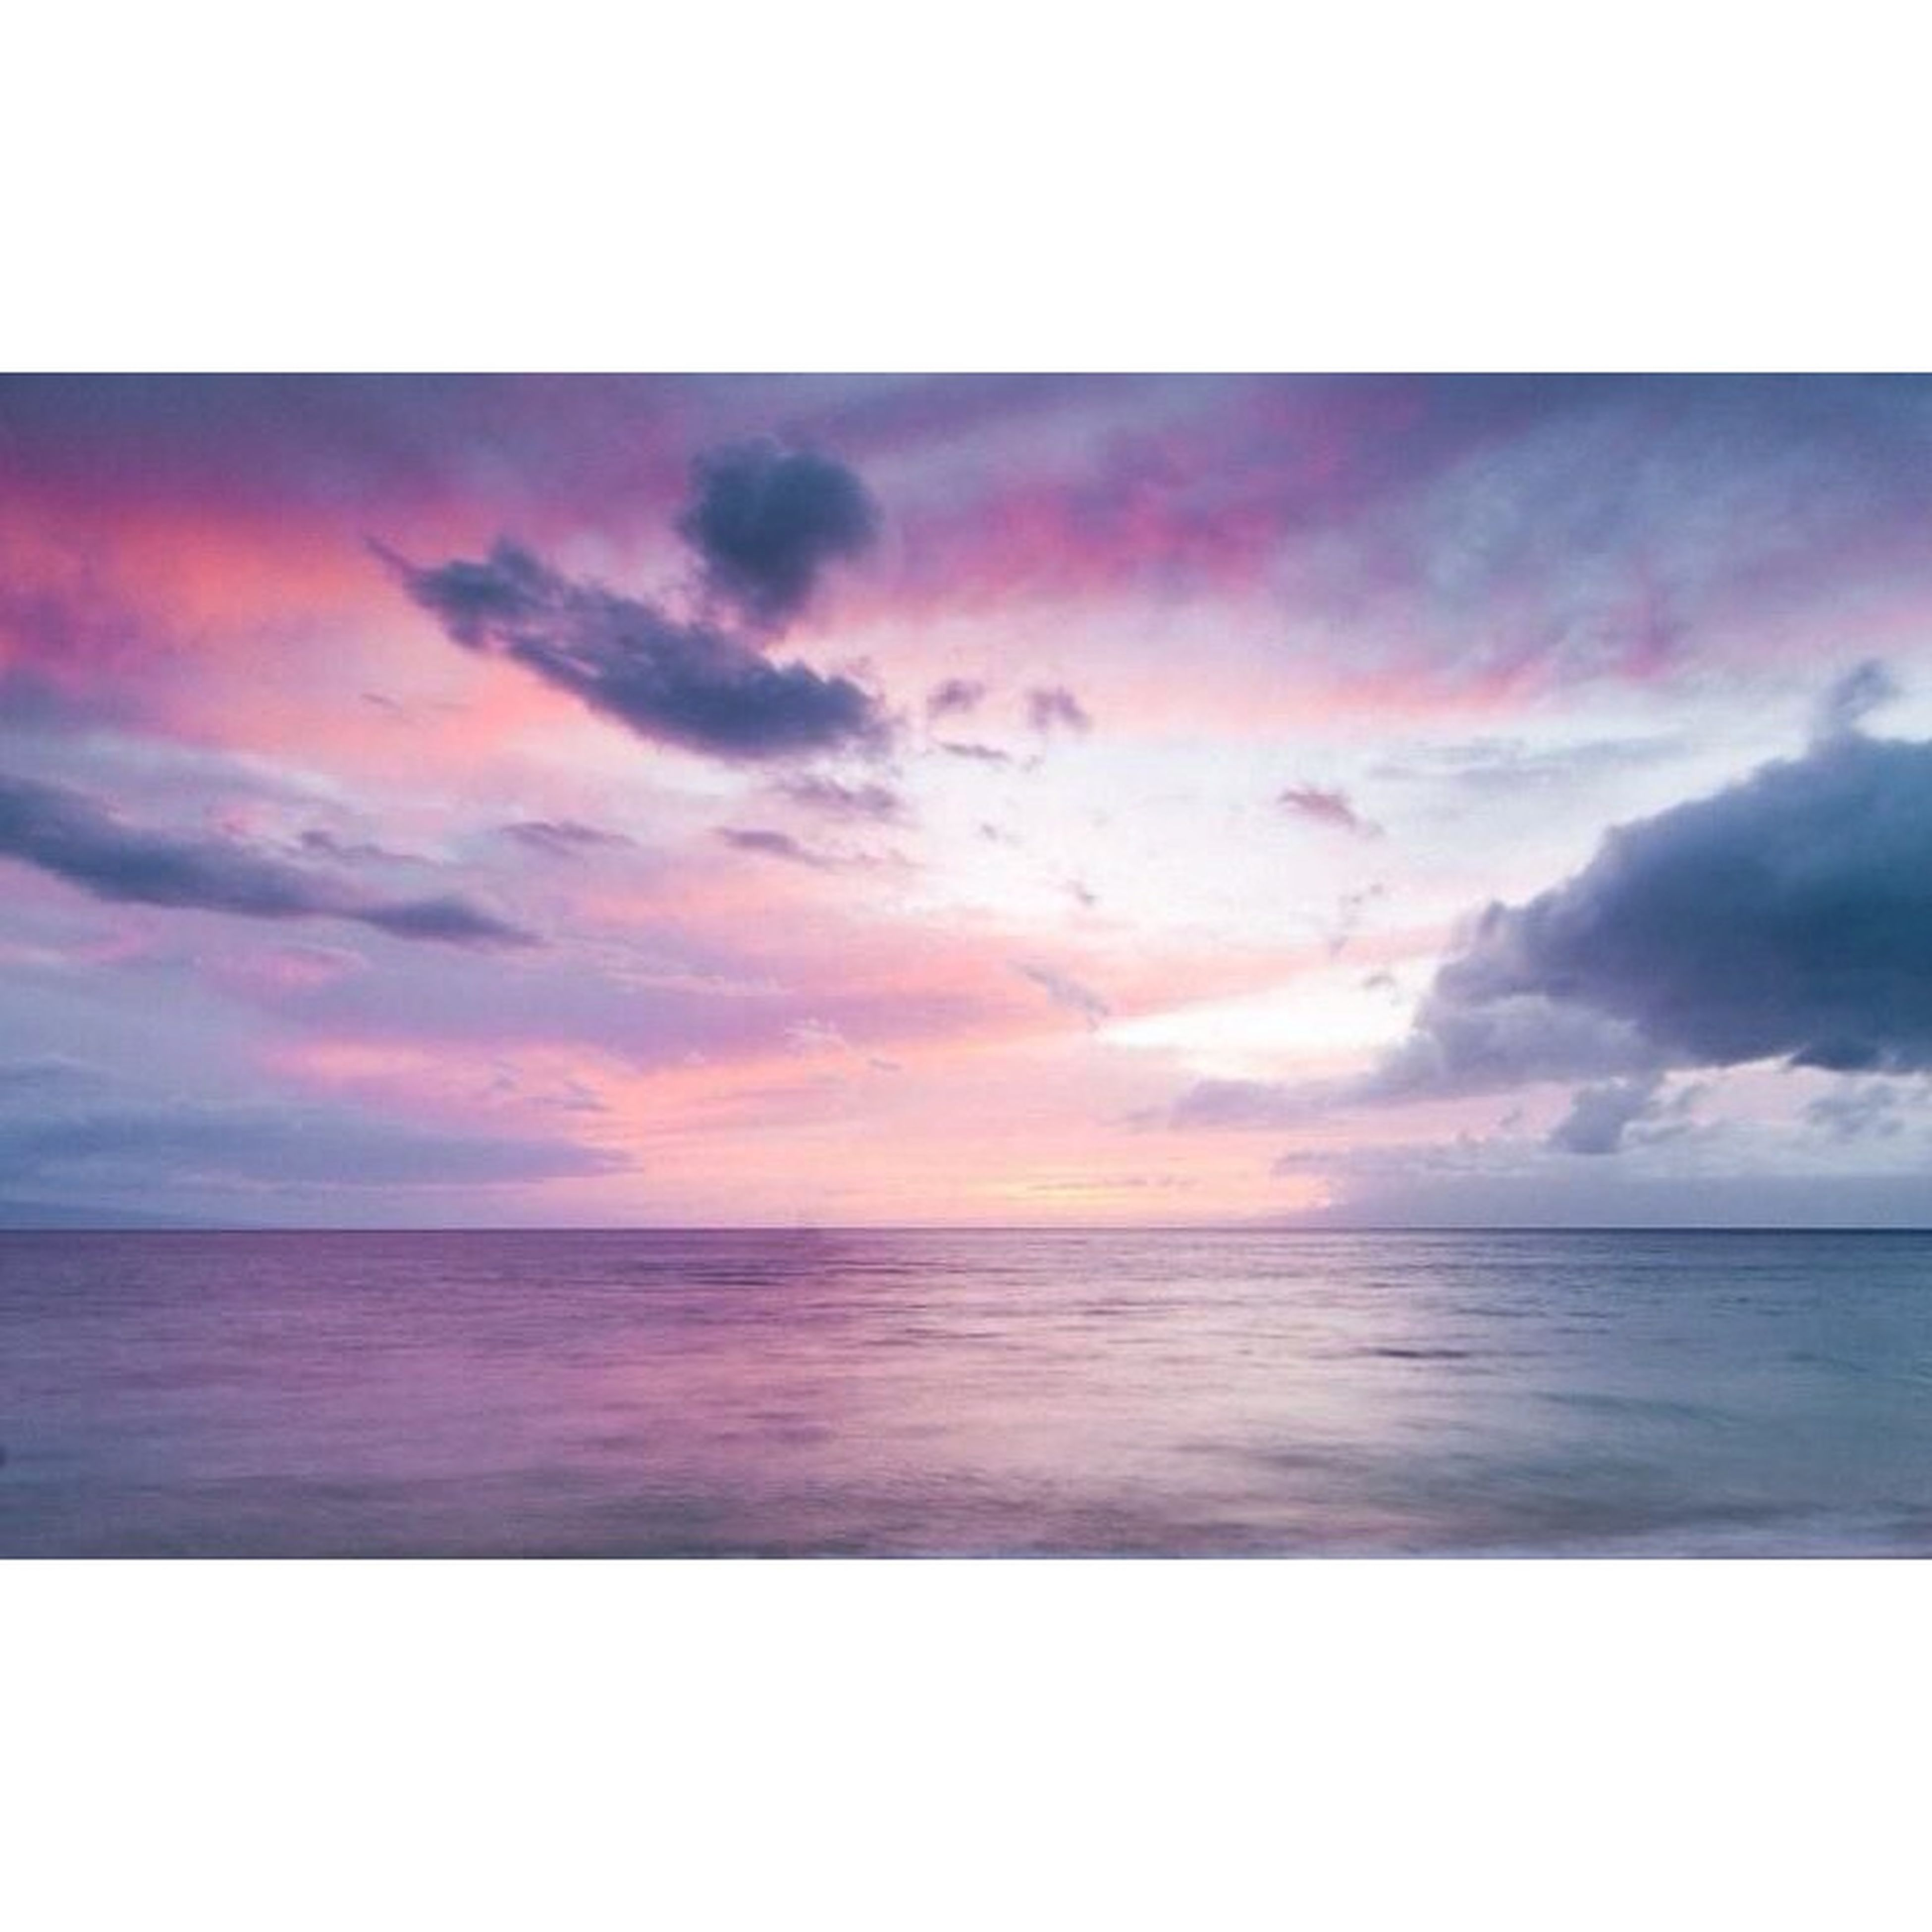 horizon over water, sea, scenics, water, tranquil scene, sky, beauty in nature, tranquility, sunset, transfer print, cloud - sky, auto post production filter, nature, idyllic, beach, cloud, cloudy, shore, seascape, outdoors